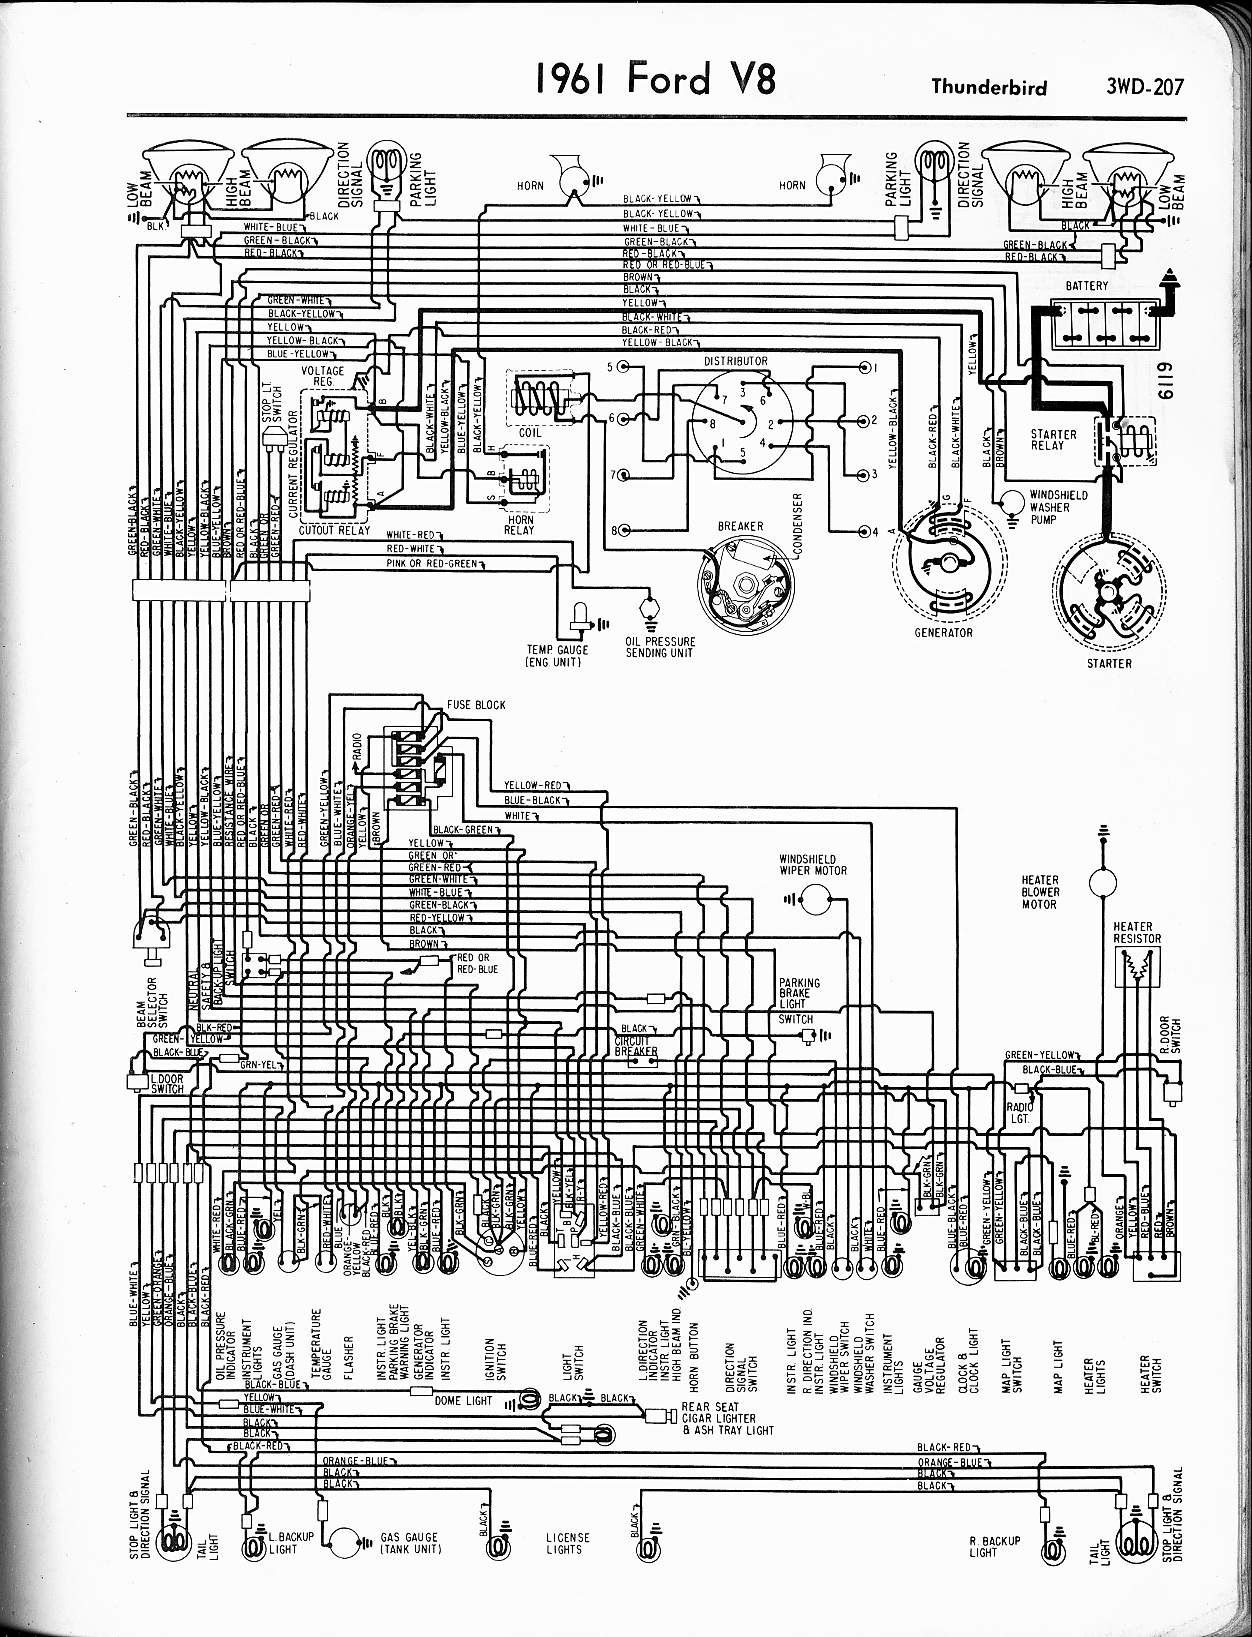 1956 ford thunderbird wiring diagram wiring diagrams schematic 1969 Thunderbird Black 57 65 ford wiring diagrams 1954 ford wiring diagram 1956 ford thunderbird wiring diagram